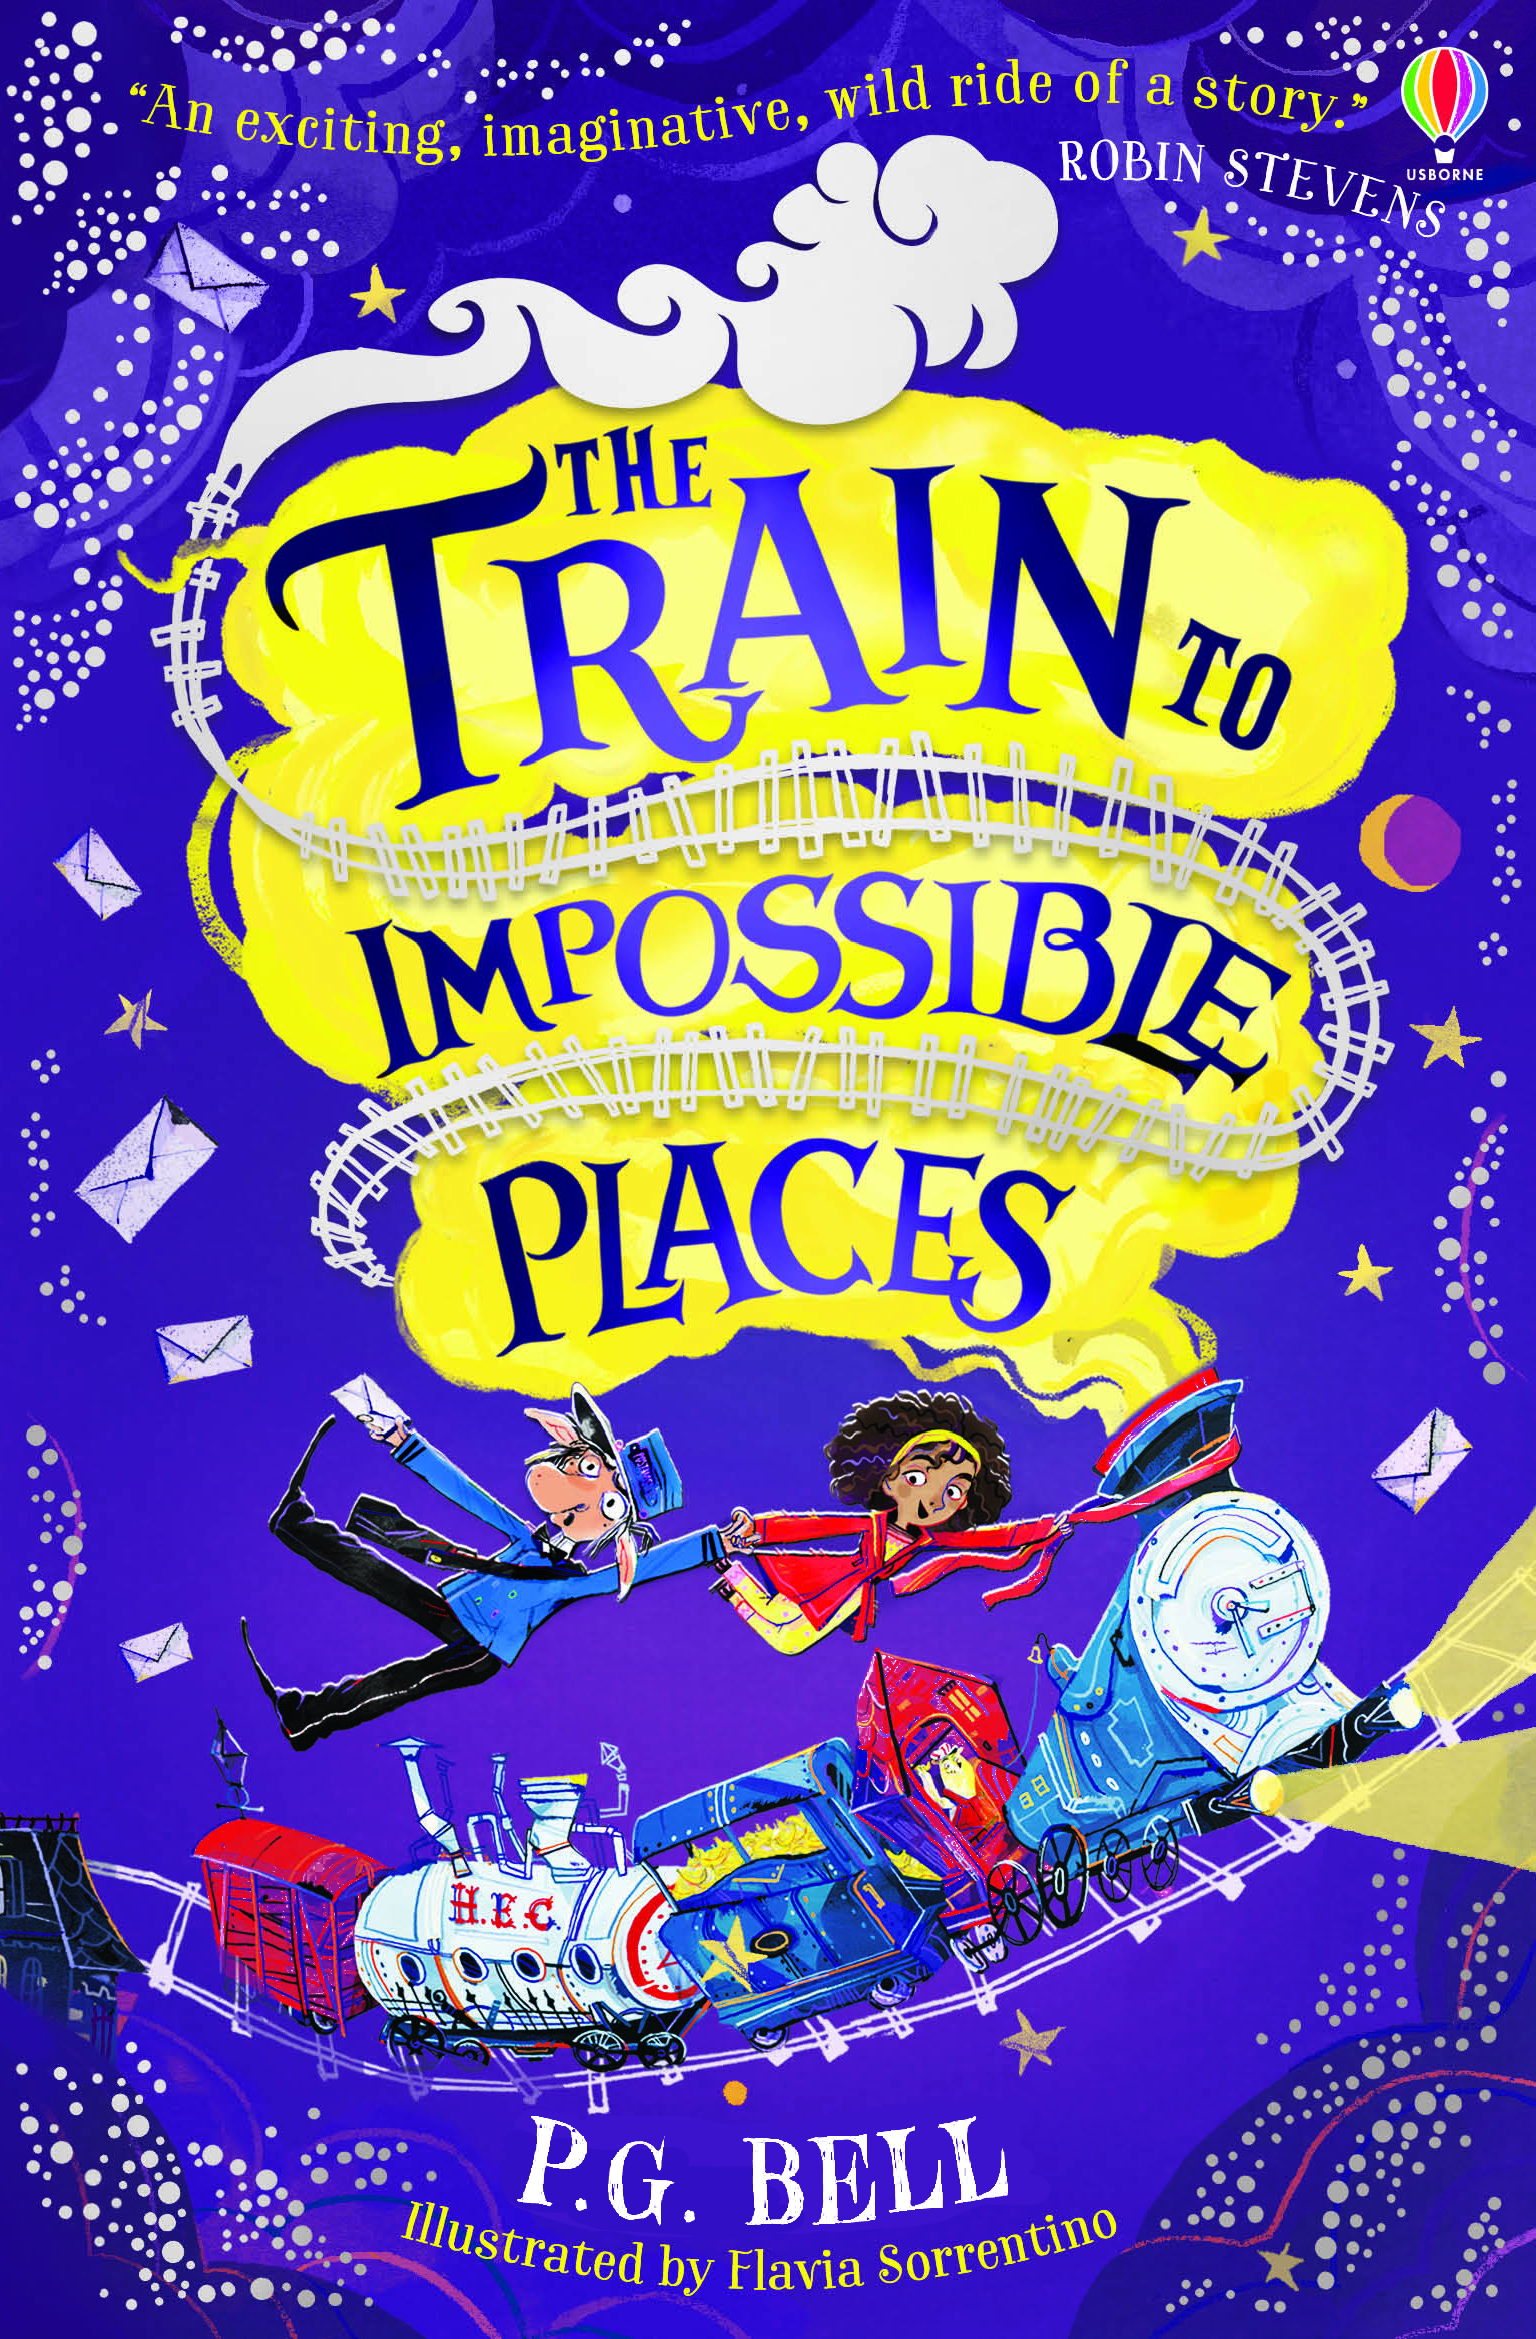 The paperback cover of The Train To Impossible Places. It's purple, and features Suzy and Wilmot flying above the train, which puffs yellow steam from its chimney.